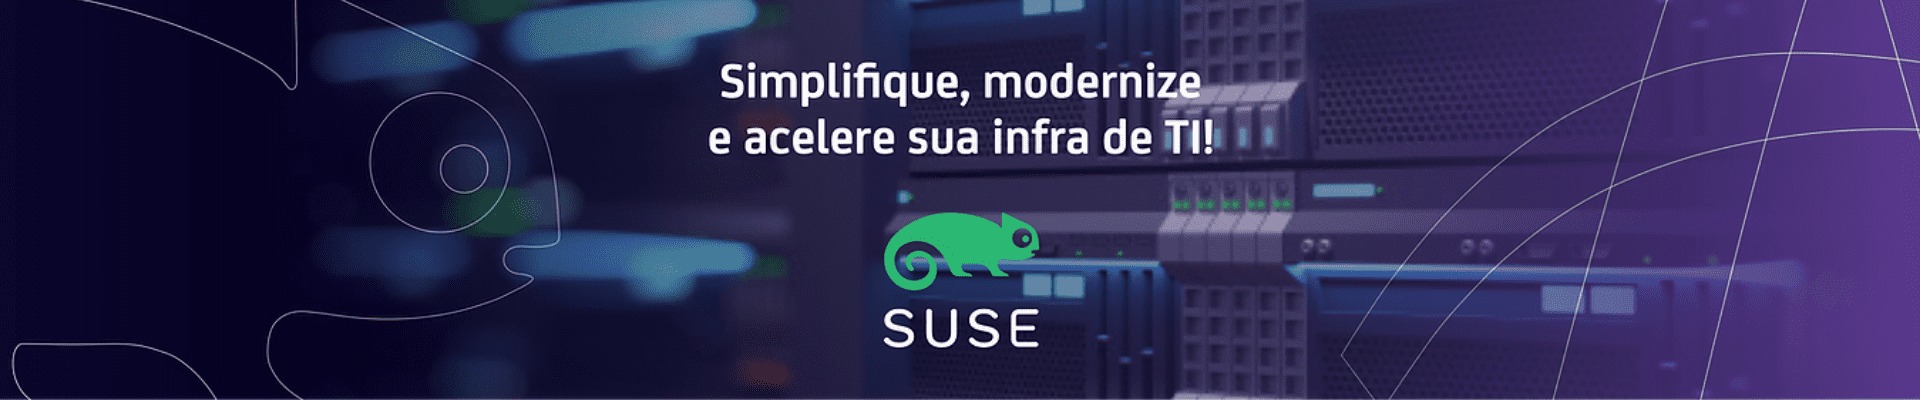 suse-banner